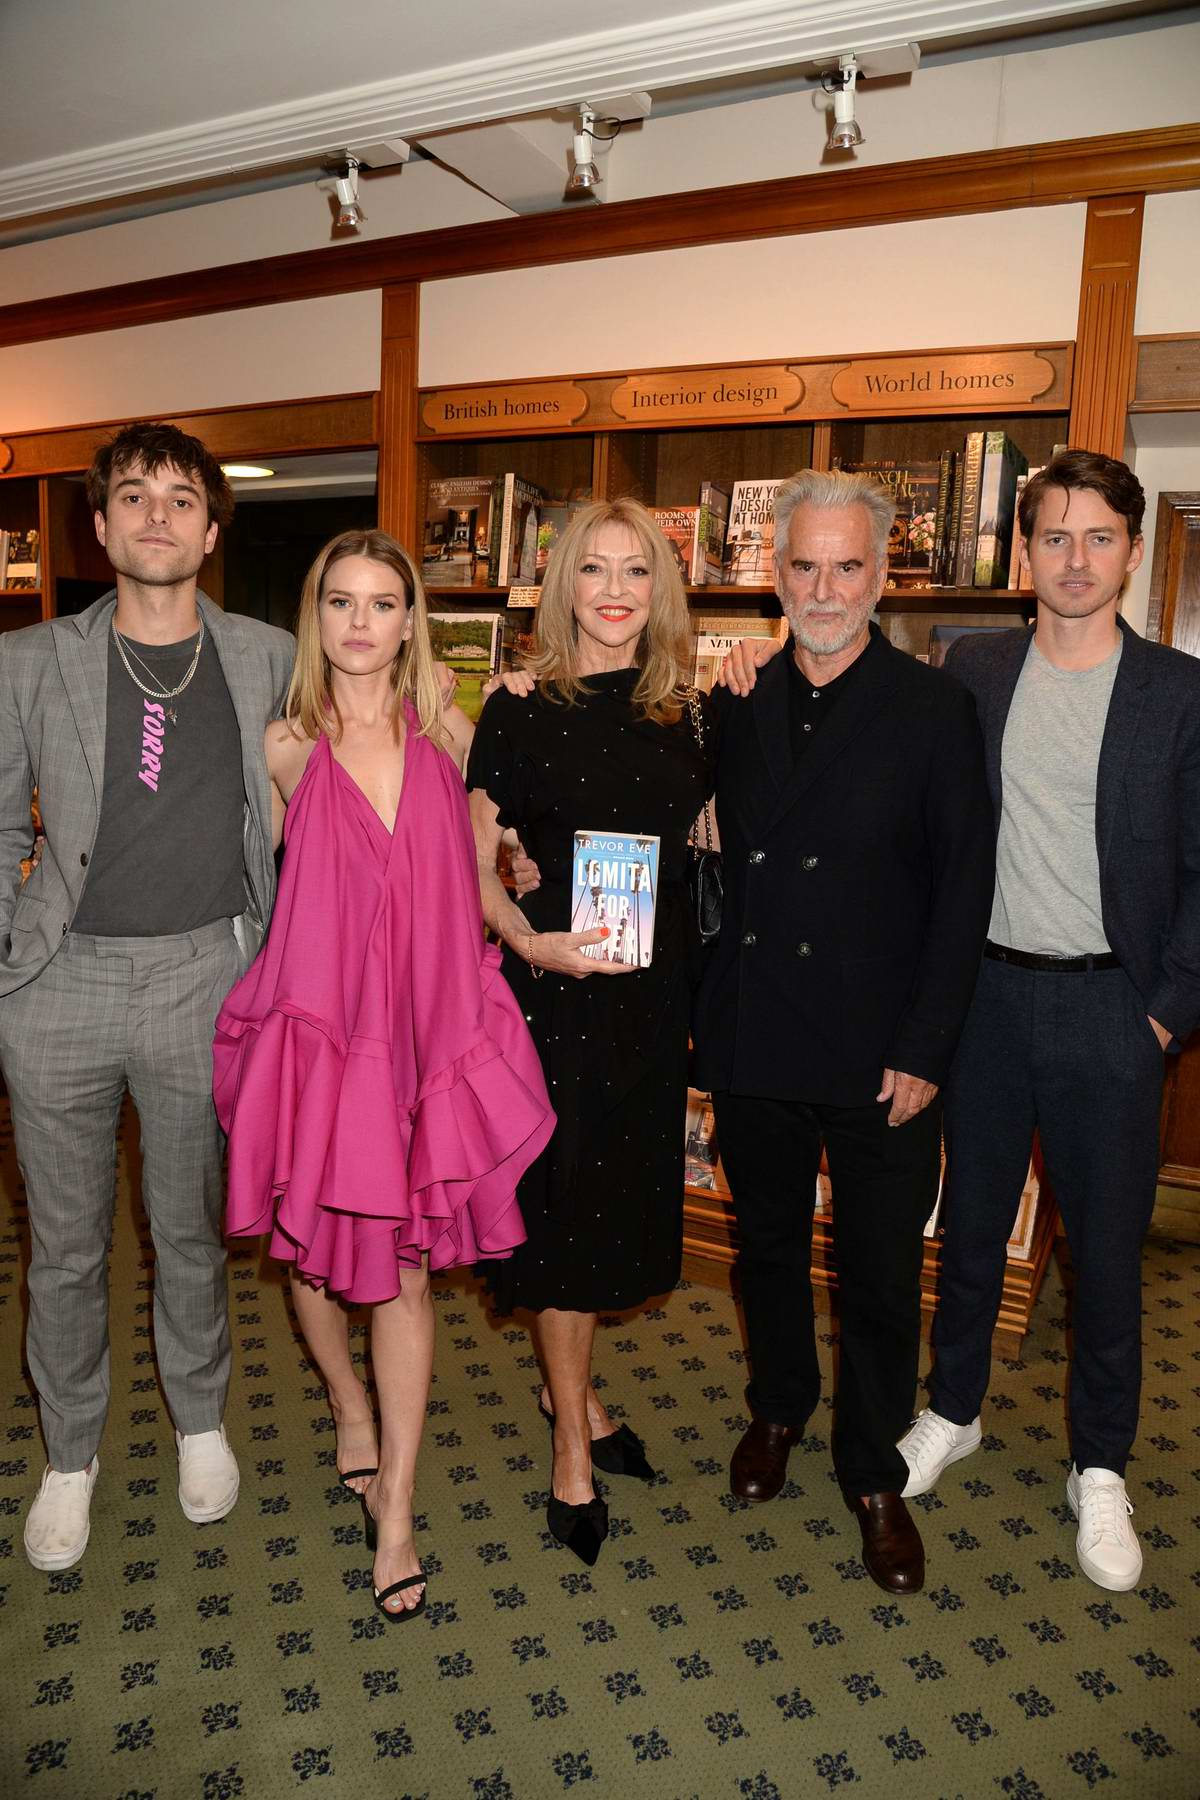 alice eve attends the launch of new book 'lomita for ever